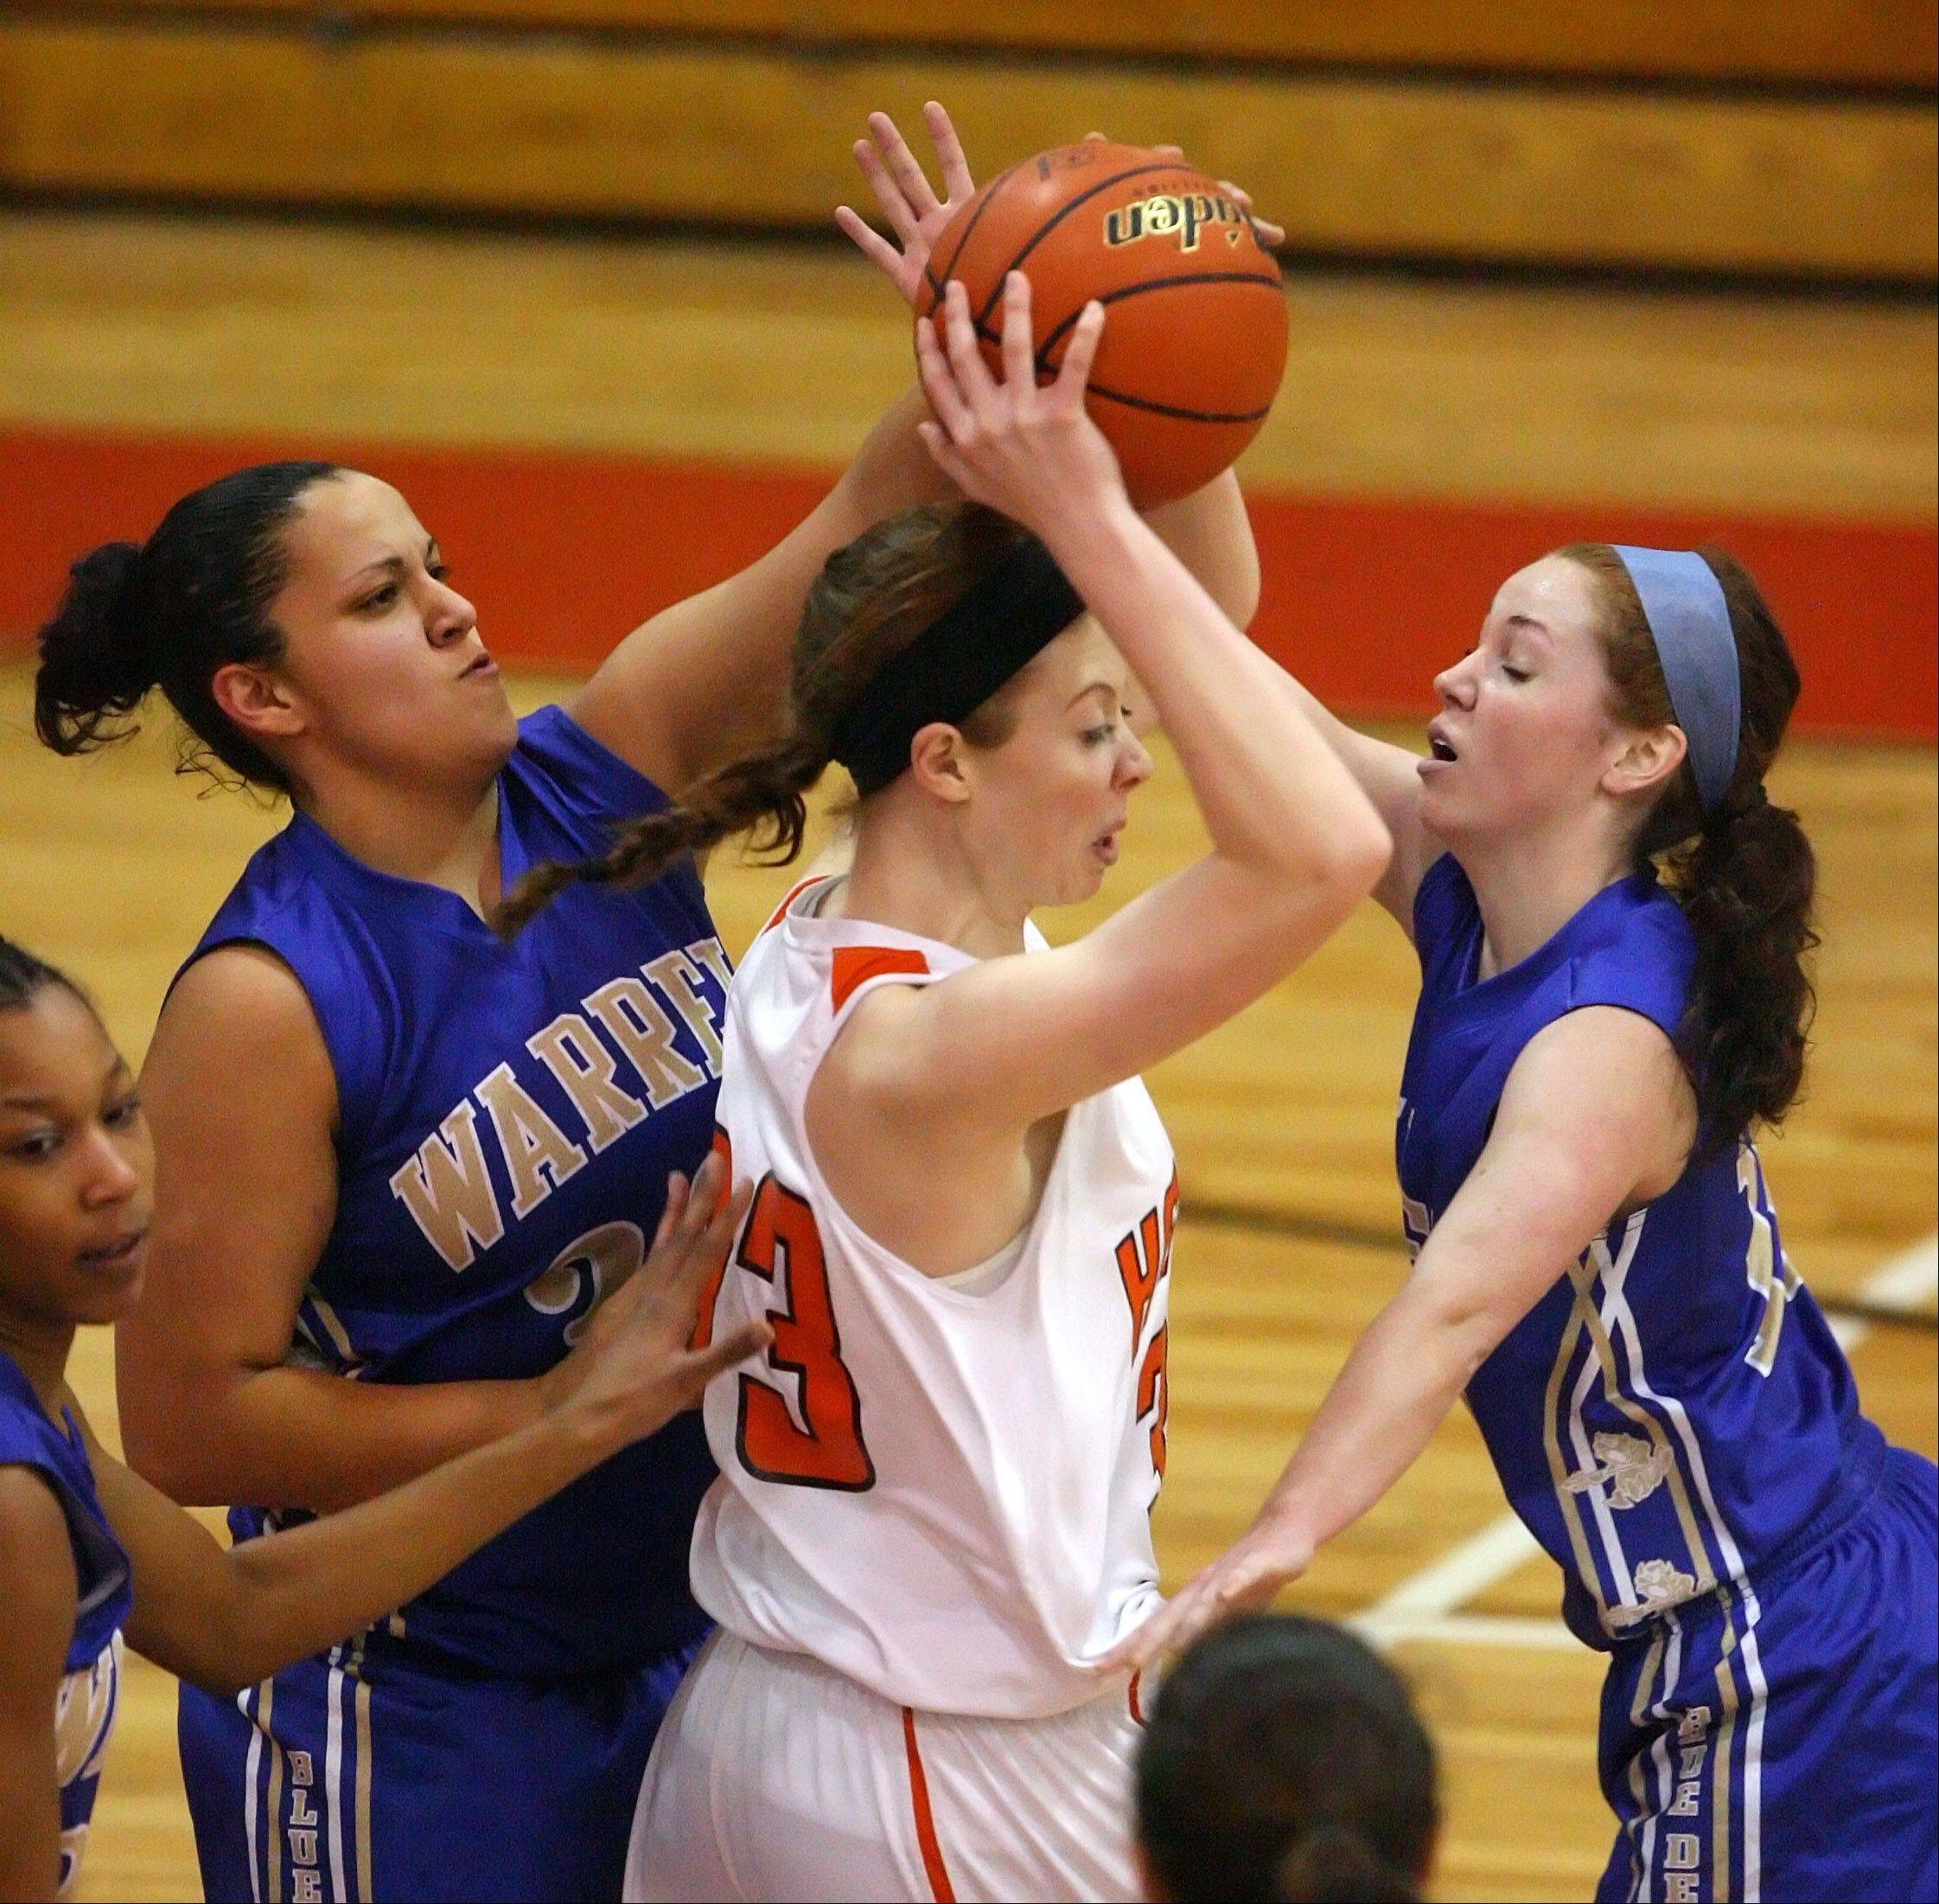 Warren's Jamie Stirling, left, and Rachel Brown double-team Hersey's Ashley Raulli.